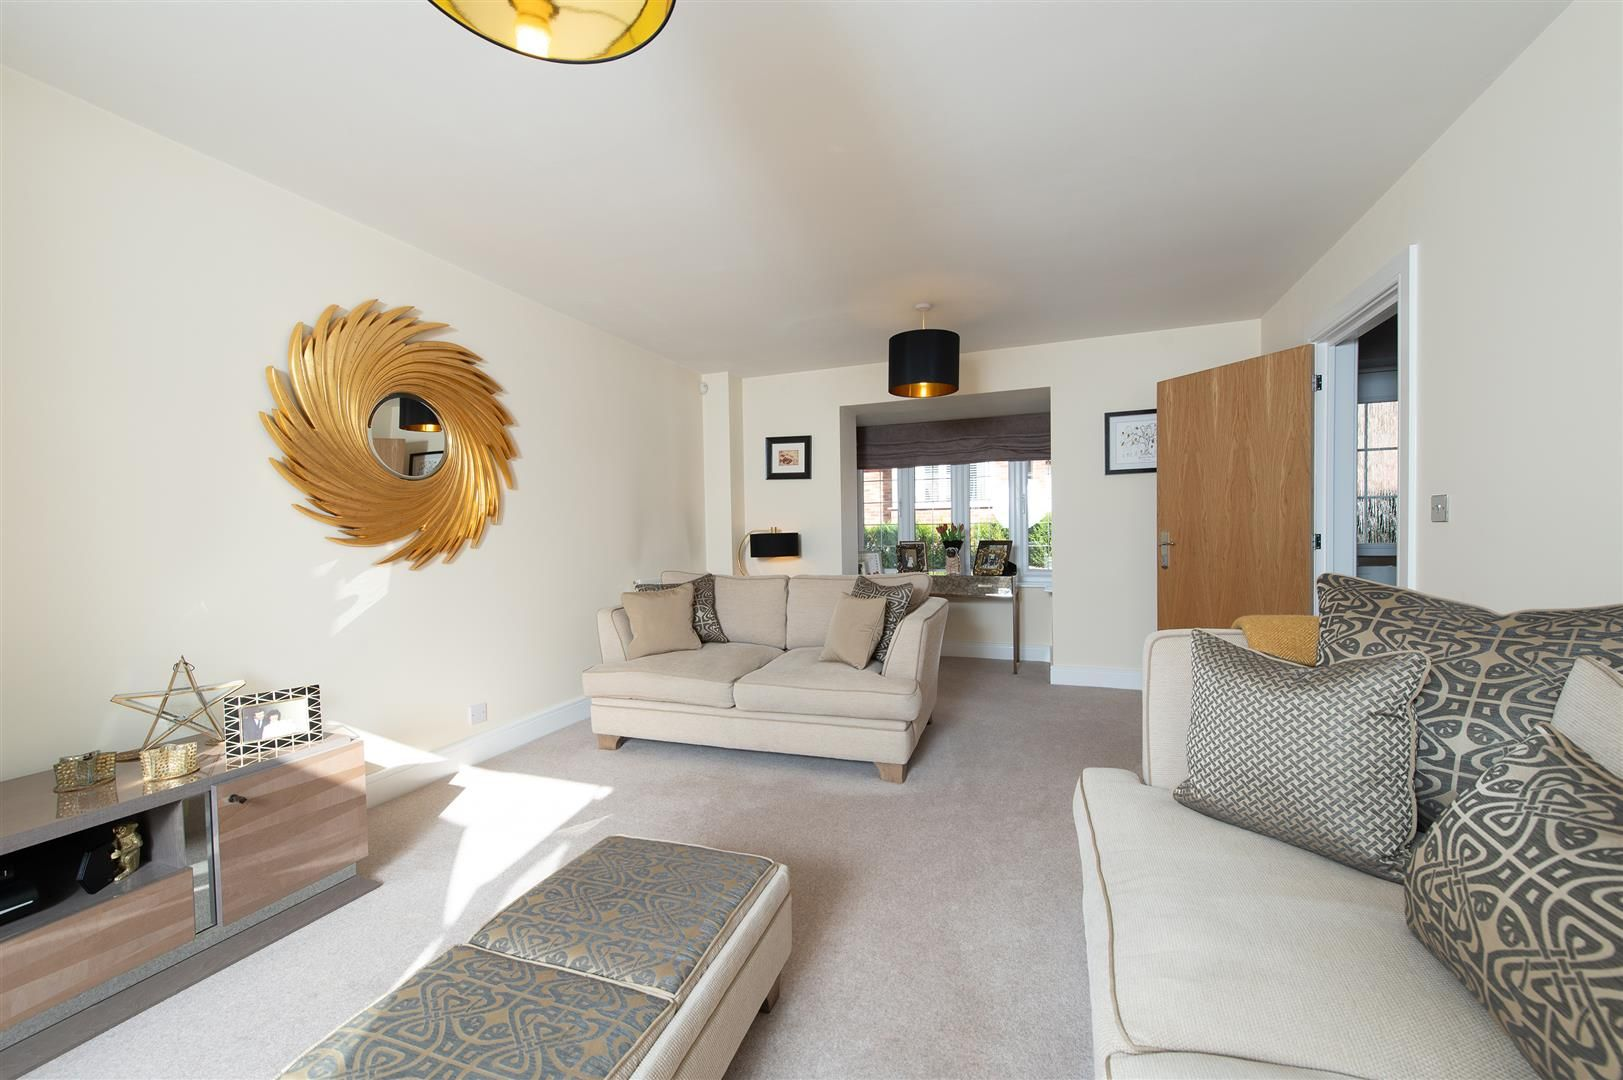 3 bed detached for sale in Hagley  - Property Image 5